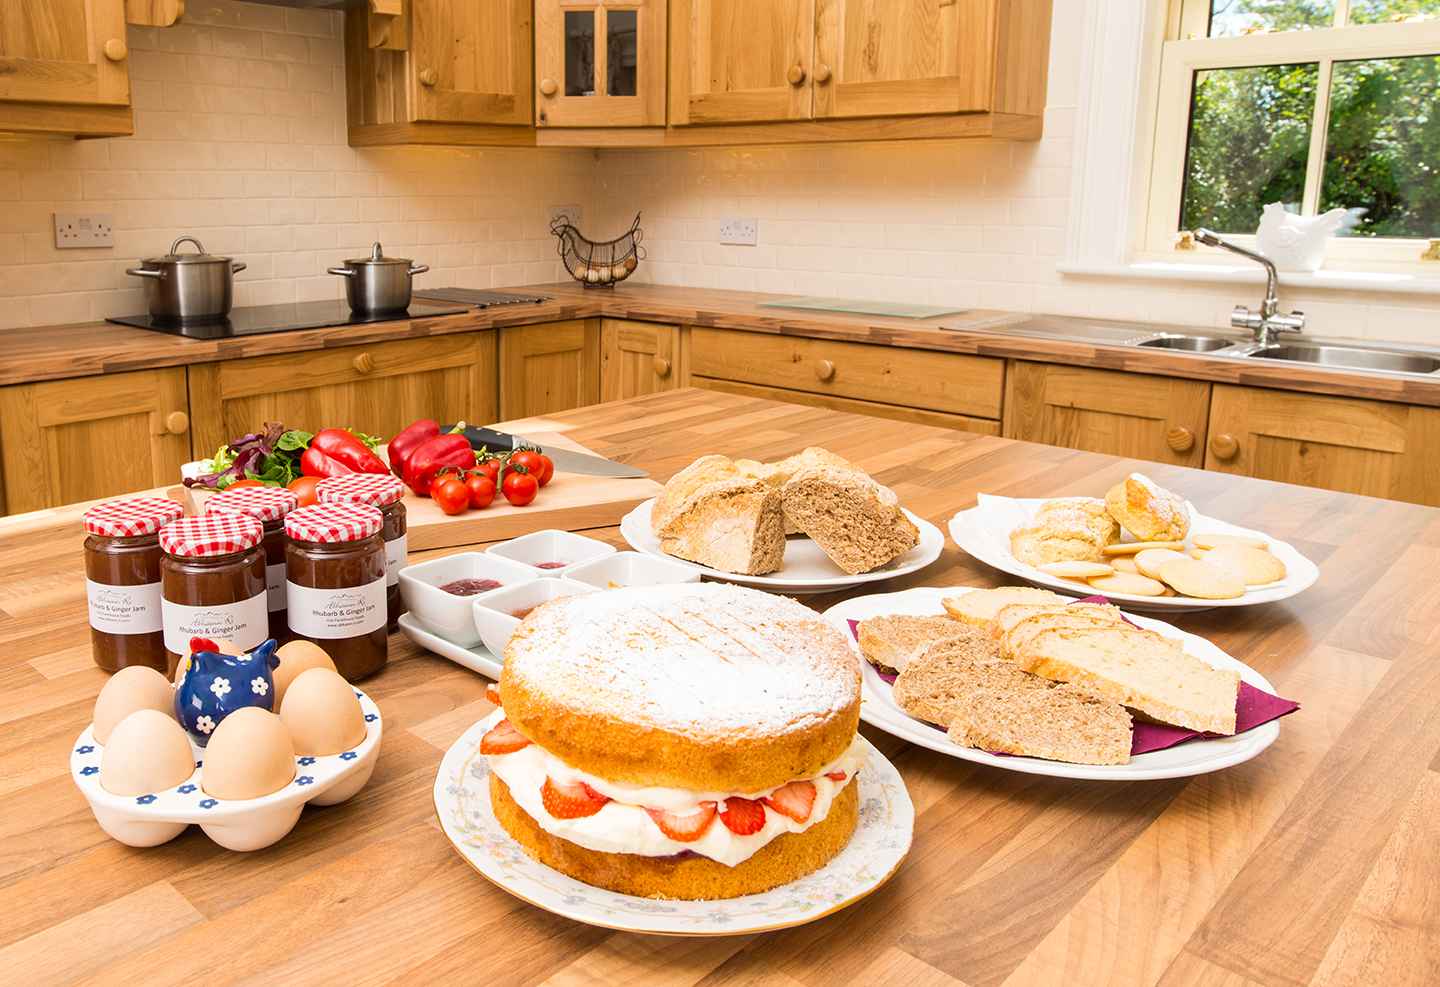 Freshly made scones, cakes and jam